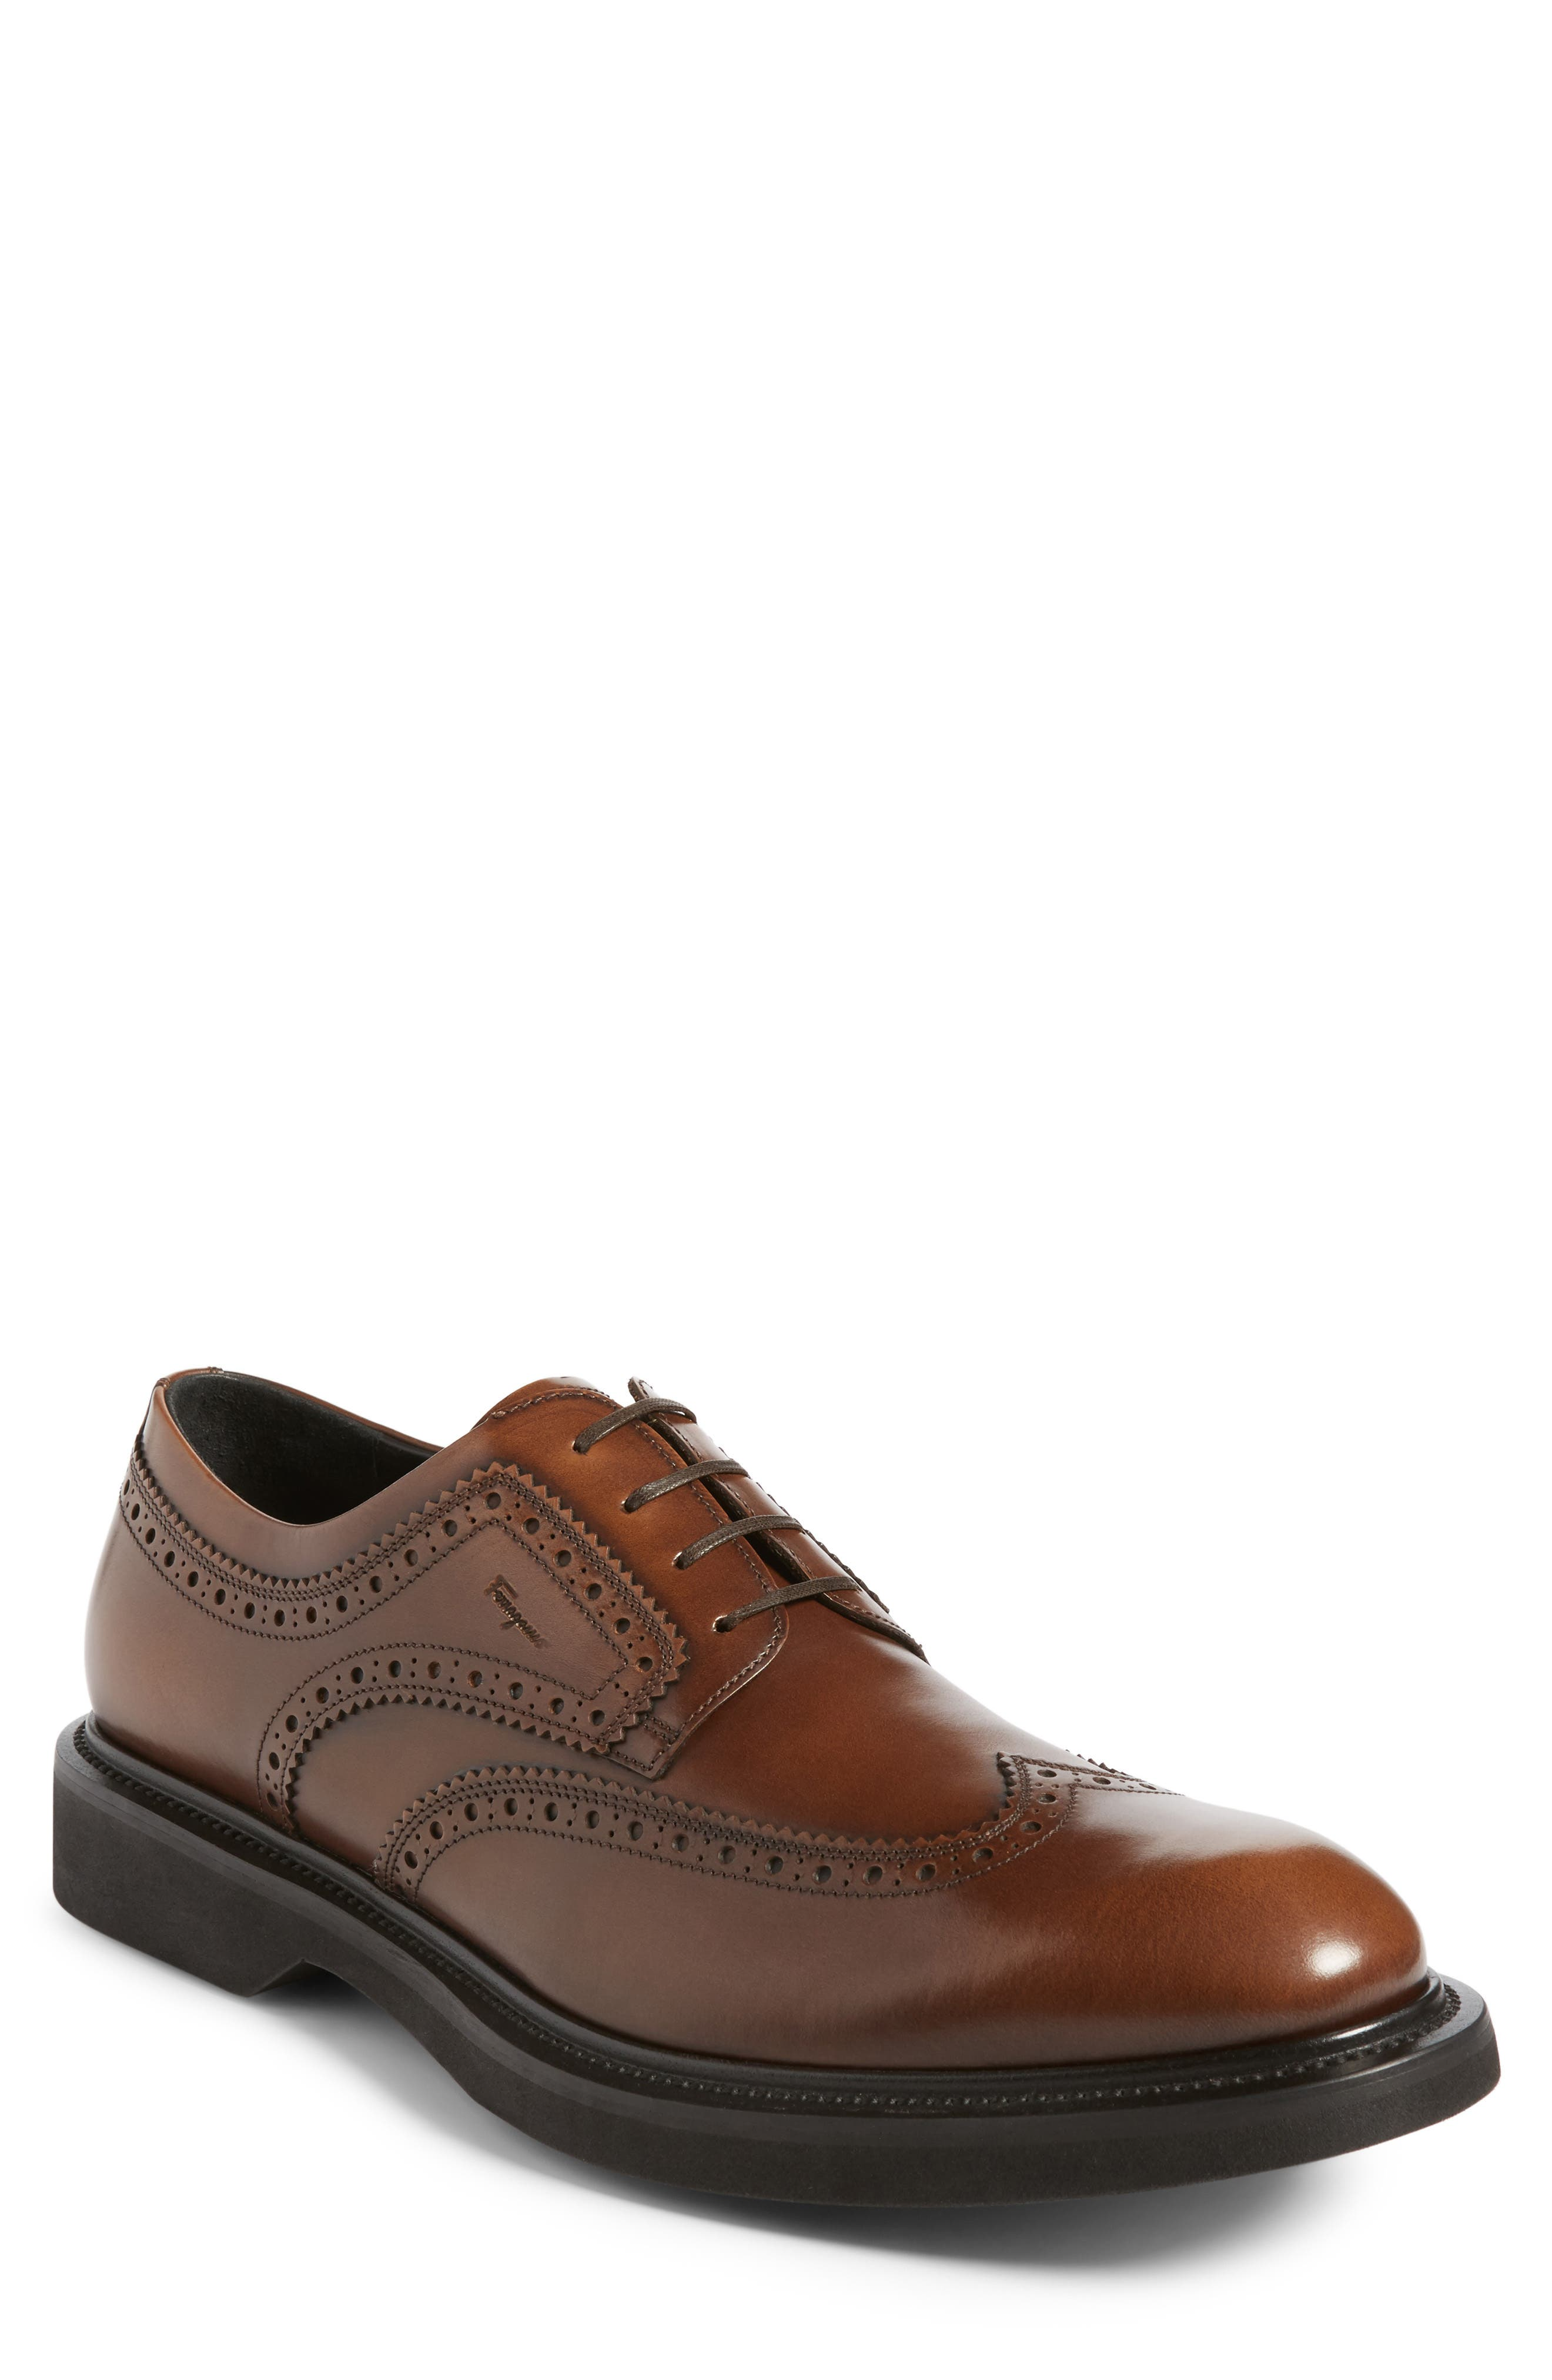 Salvatore Ferragamo Donegal Wingtip (Men)